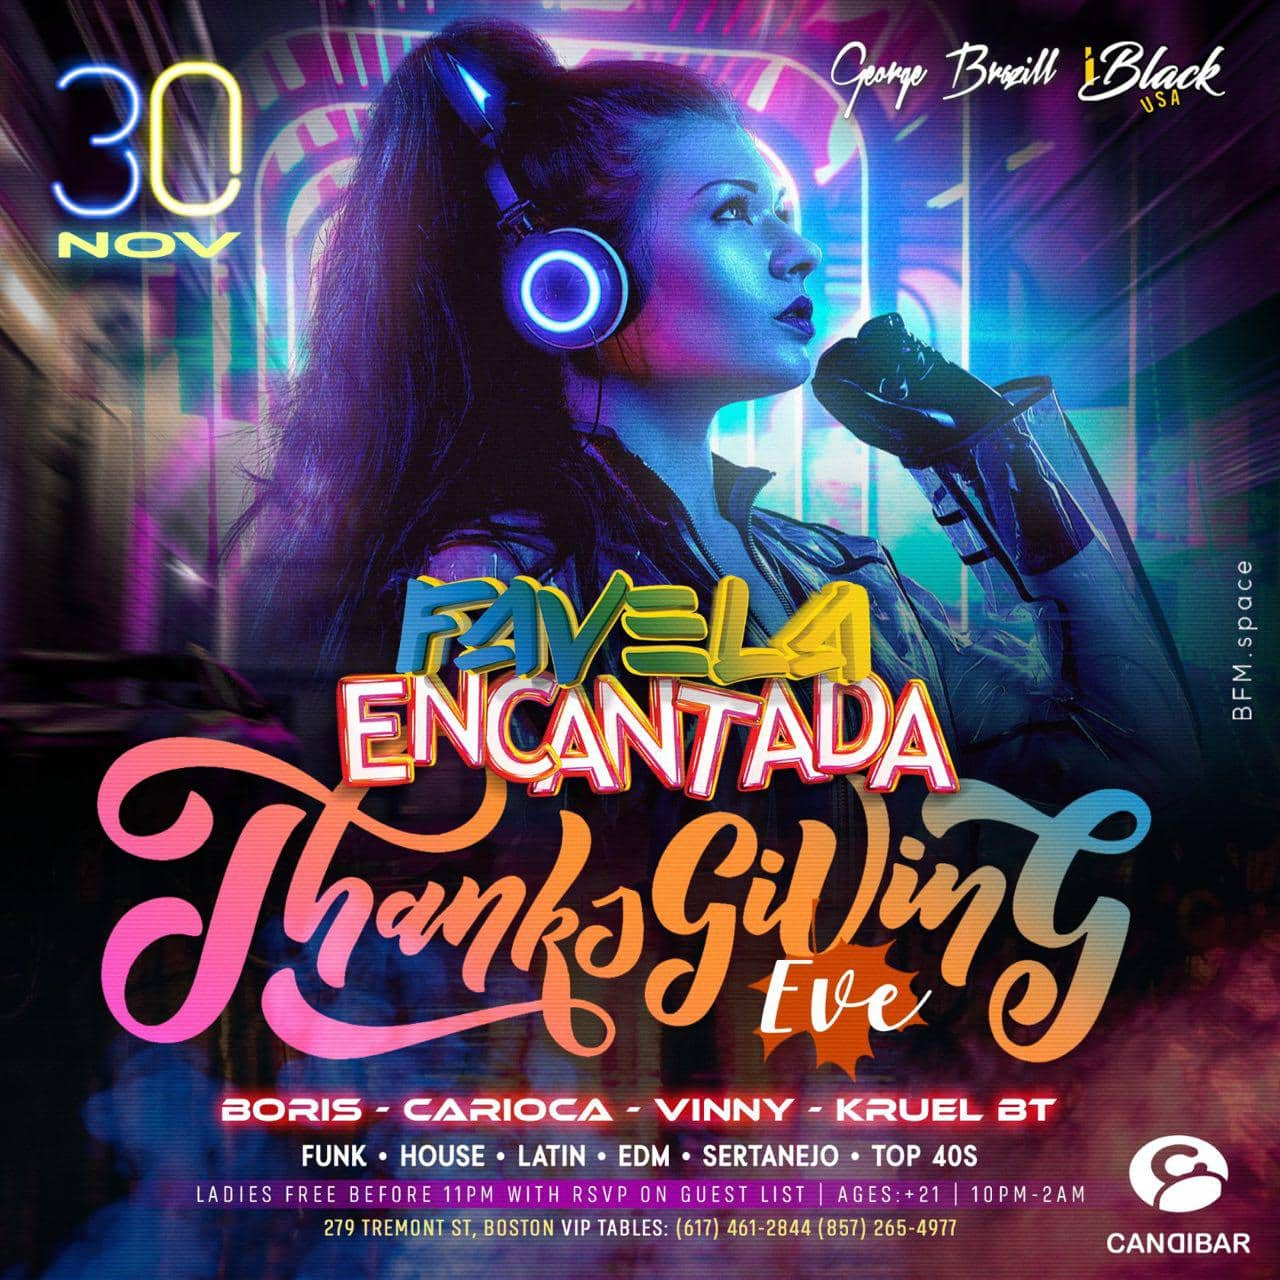 FAVELA ENCANTADA THANKSGIVING EVE 30 NOV - CANDIBAR BOSTON | iBlackUSA